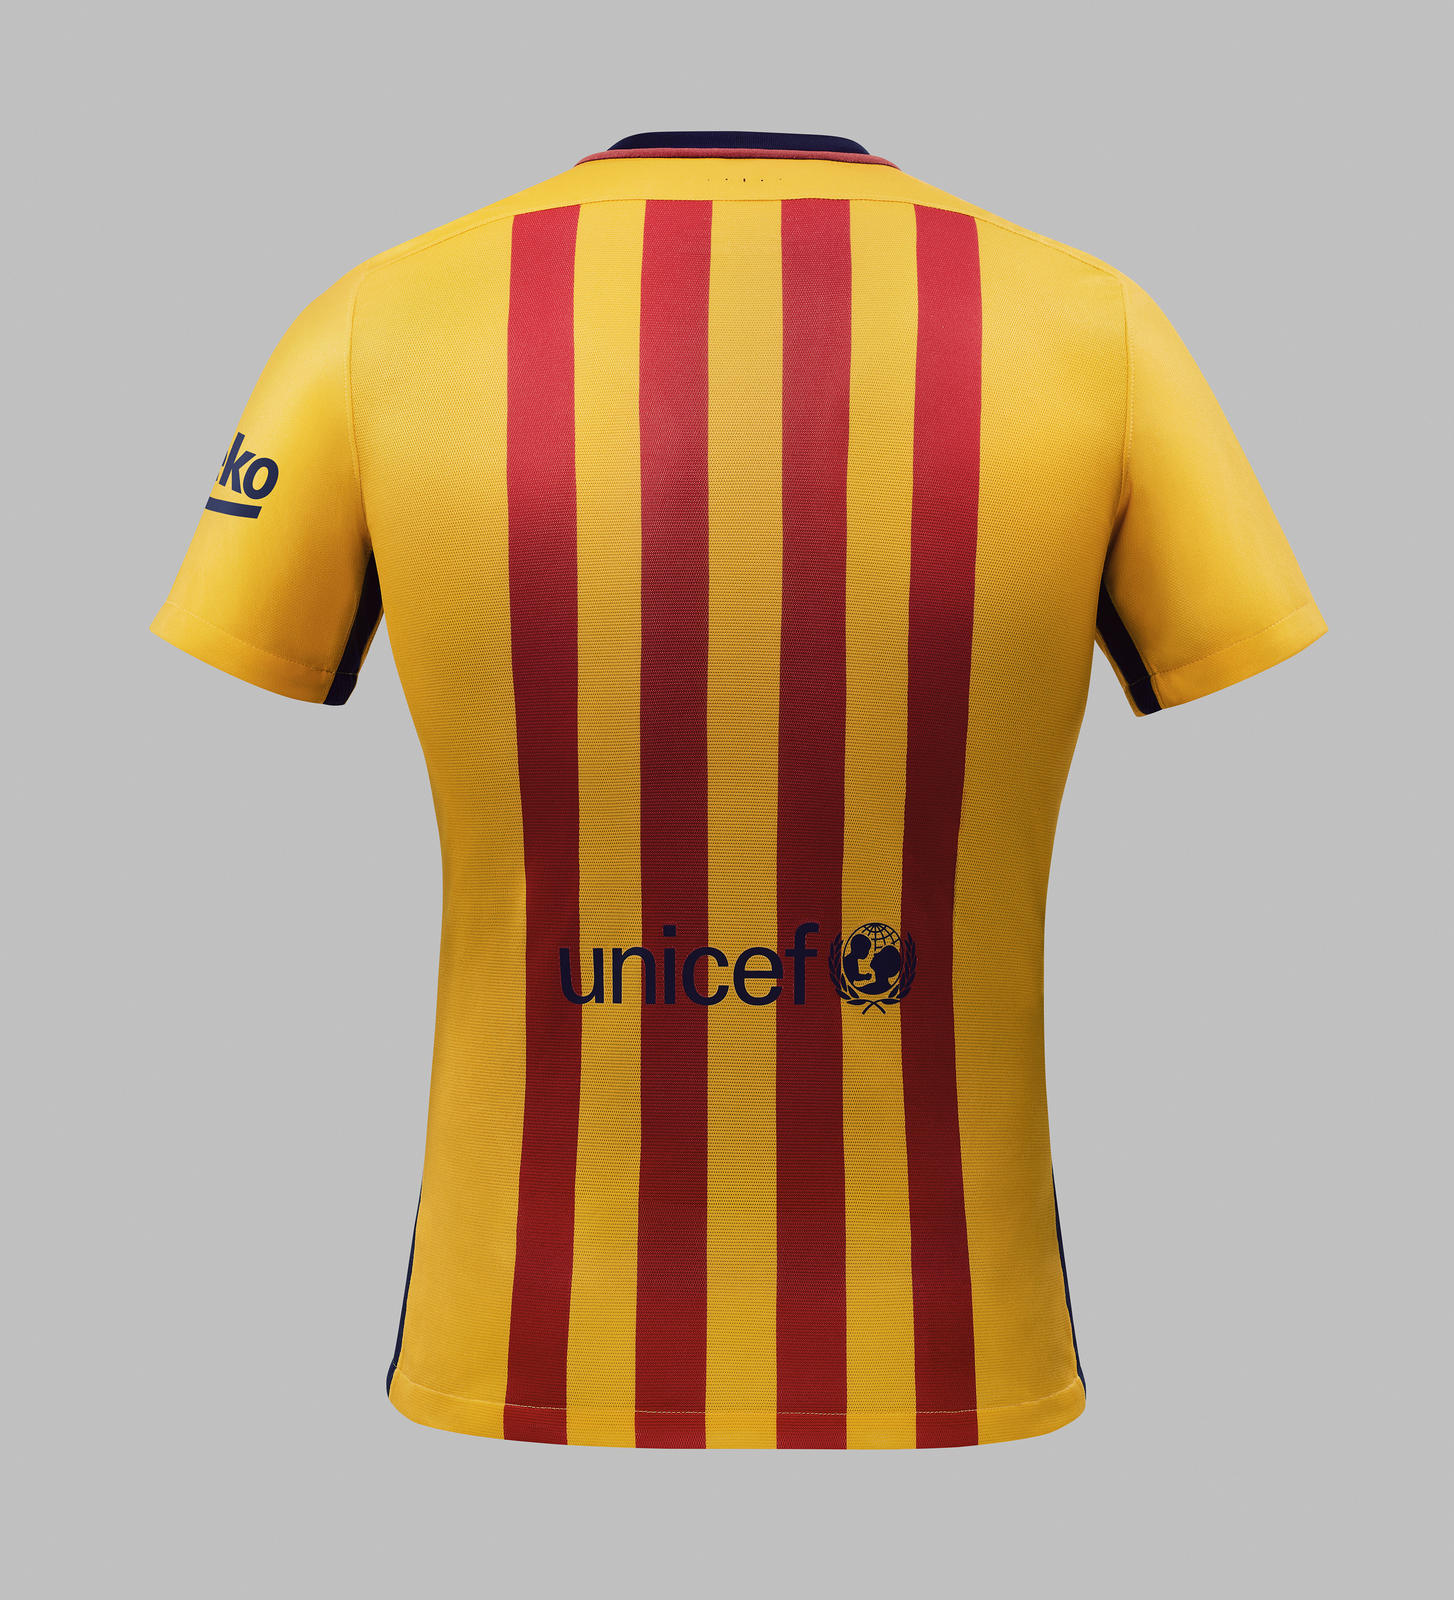 Nike%20 Su15%20 Fcb%20 Club%20 Kit%20 Yellow 078 Hfr1